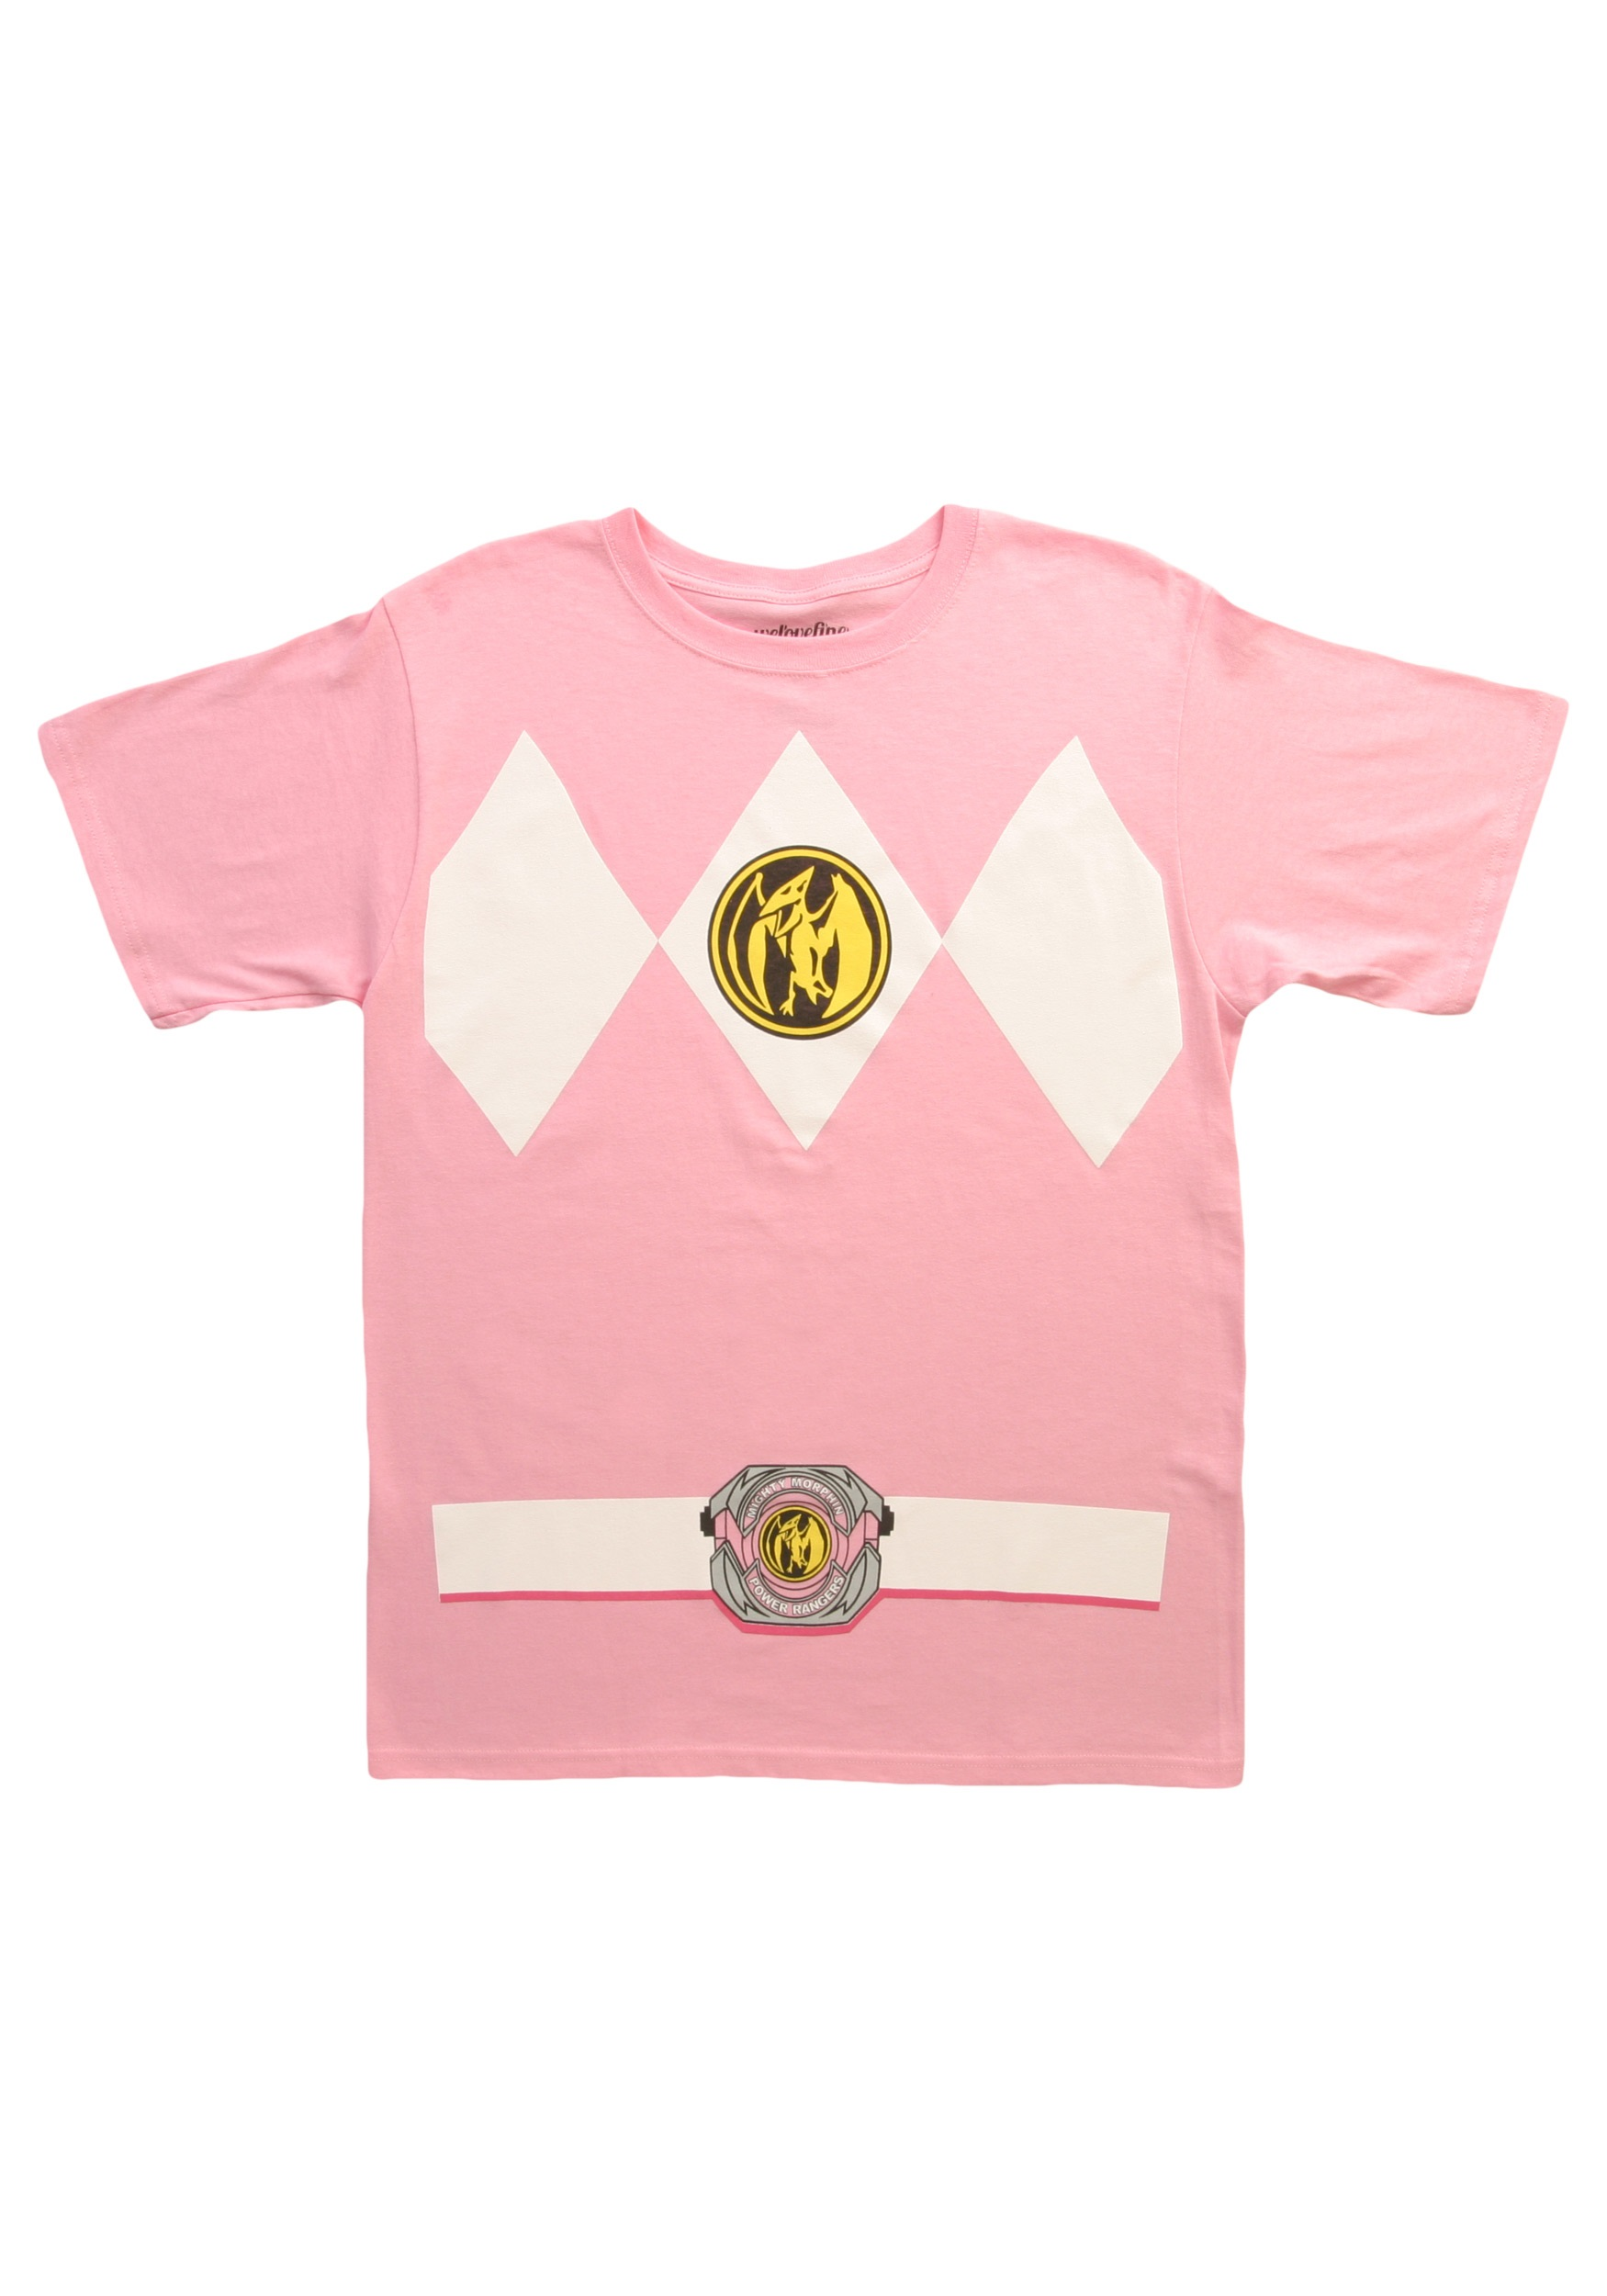 Pink Power Ranger T-Shirt  sc 1 st  Halloween Costumes & Pink Power Ranger T-Shirt - Halloween Costumes